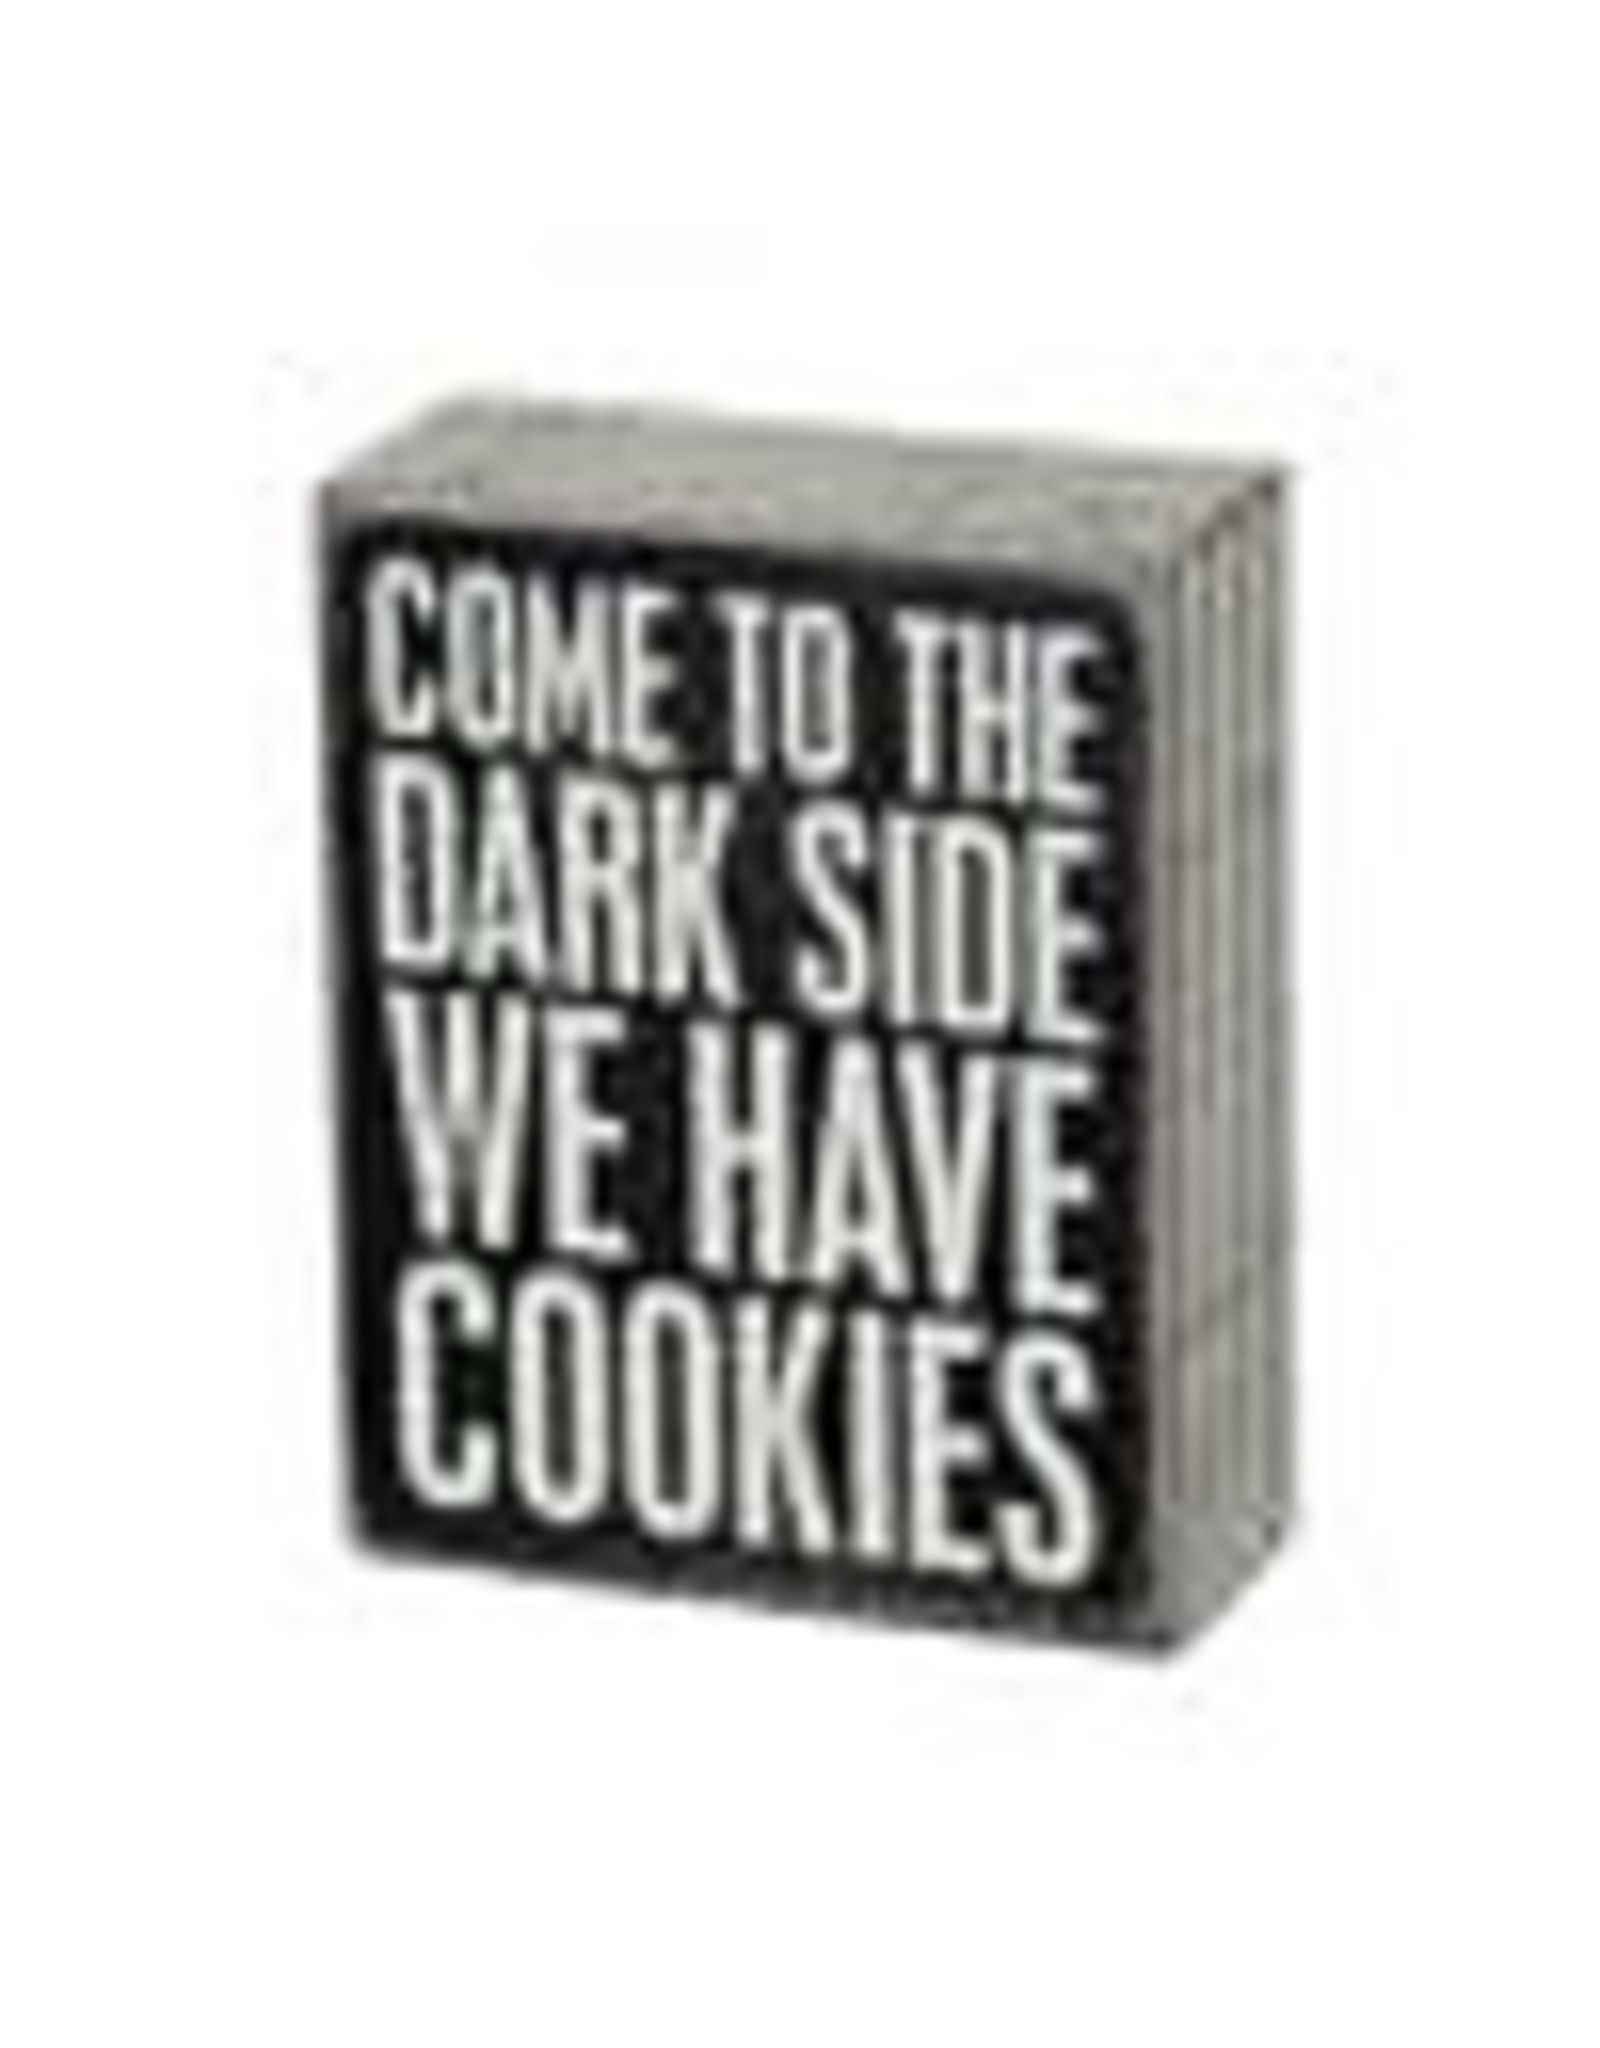 PRIMITIVES BY KATHY ATTITUDE BLOCK SIGNS COME TO THE DARK SIDE COOKIES